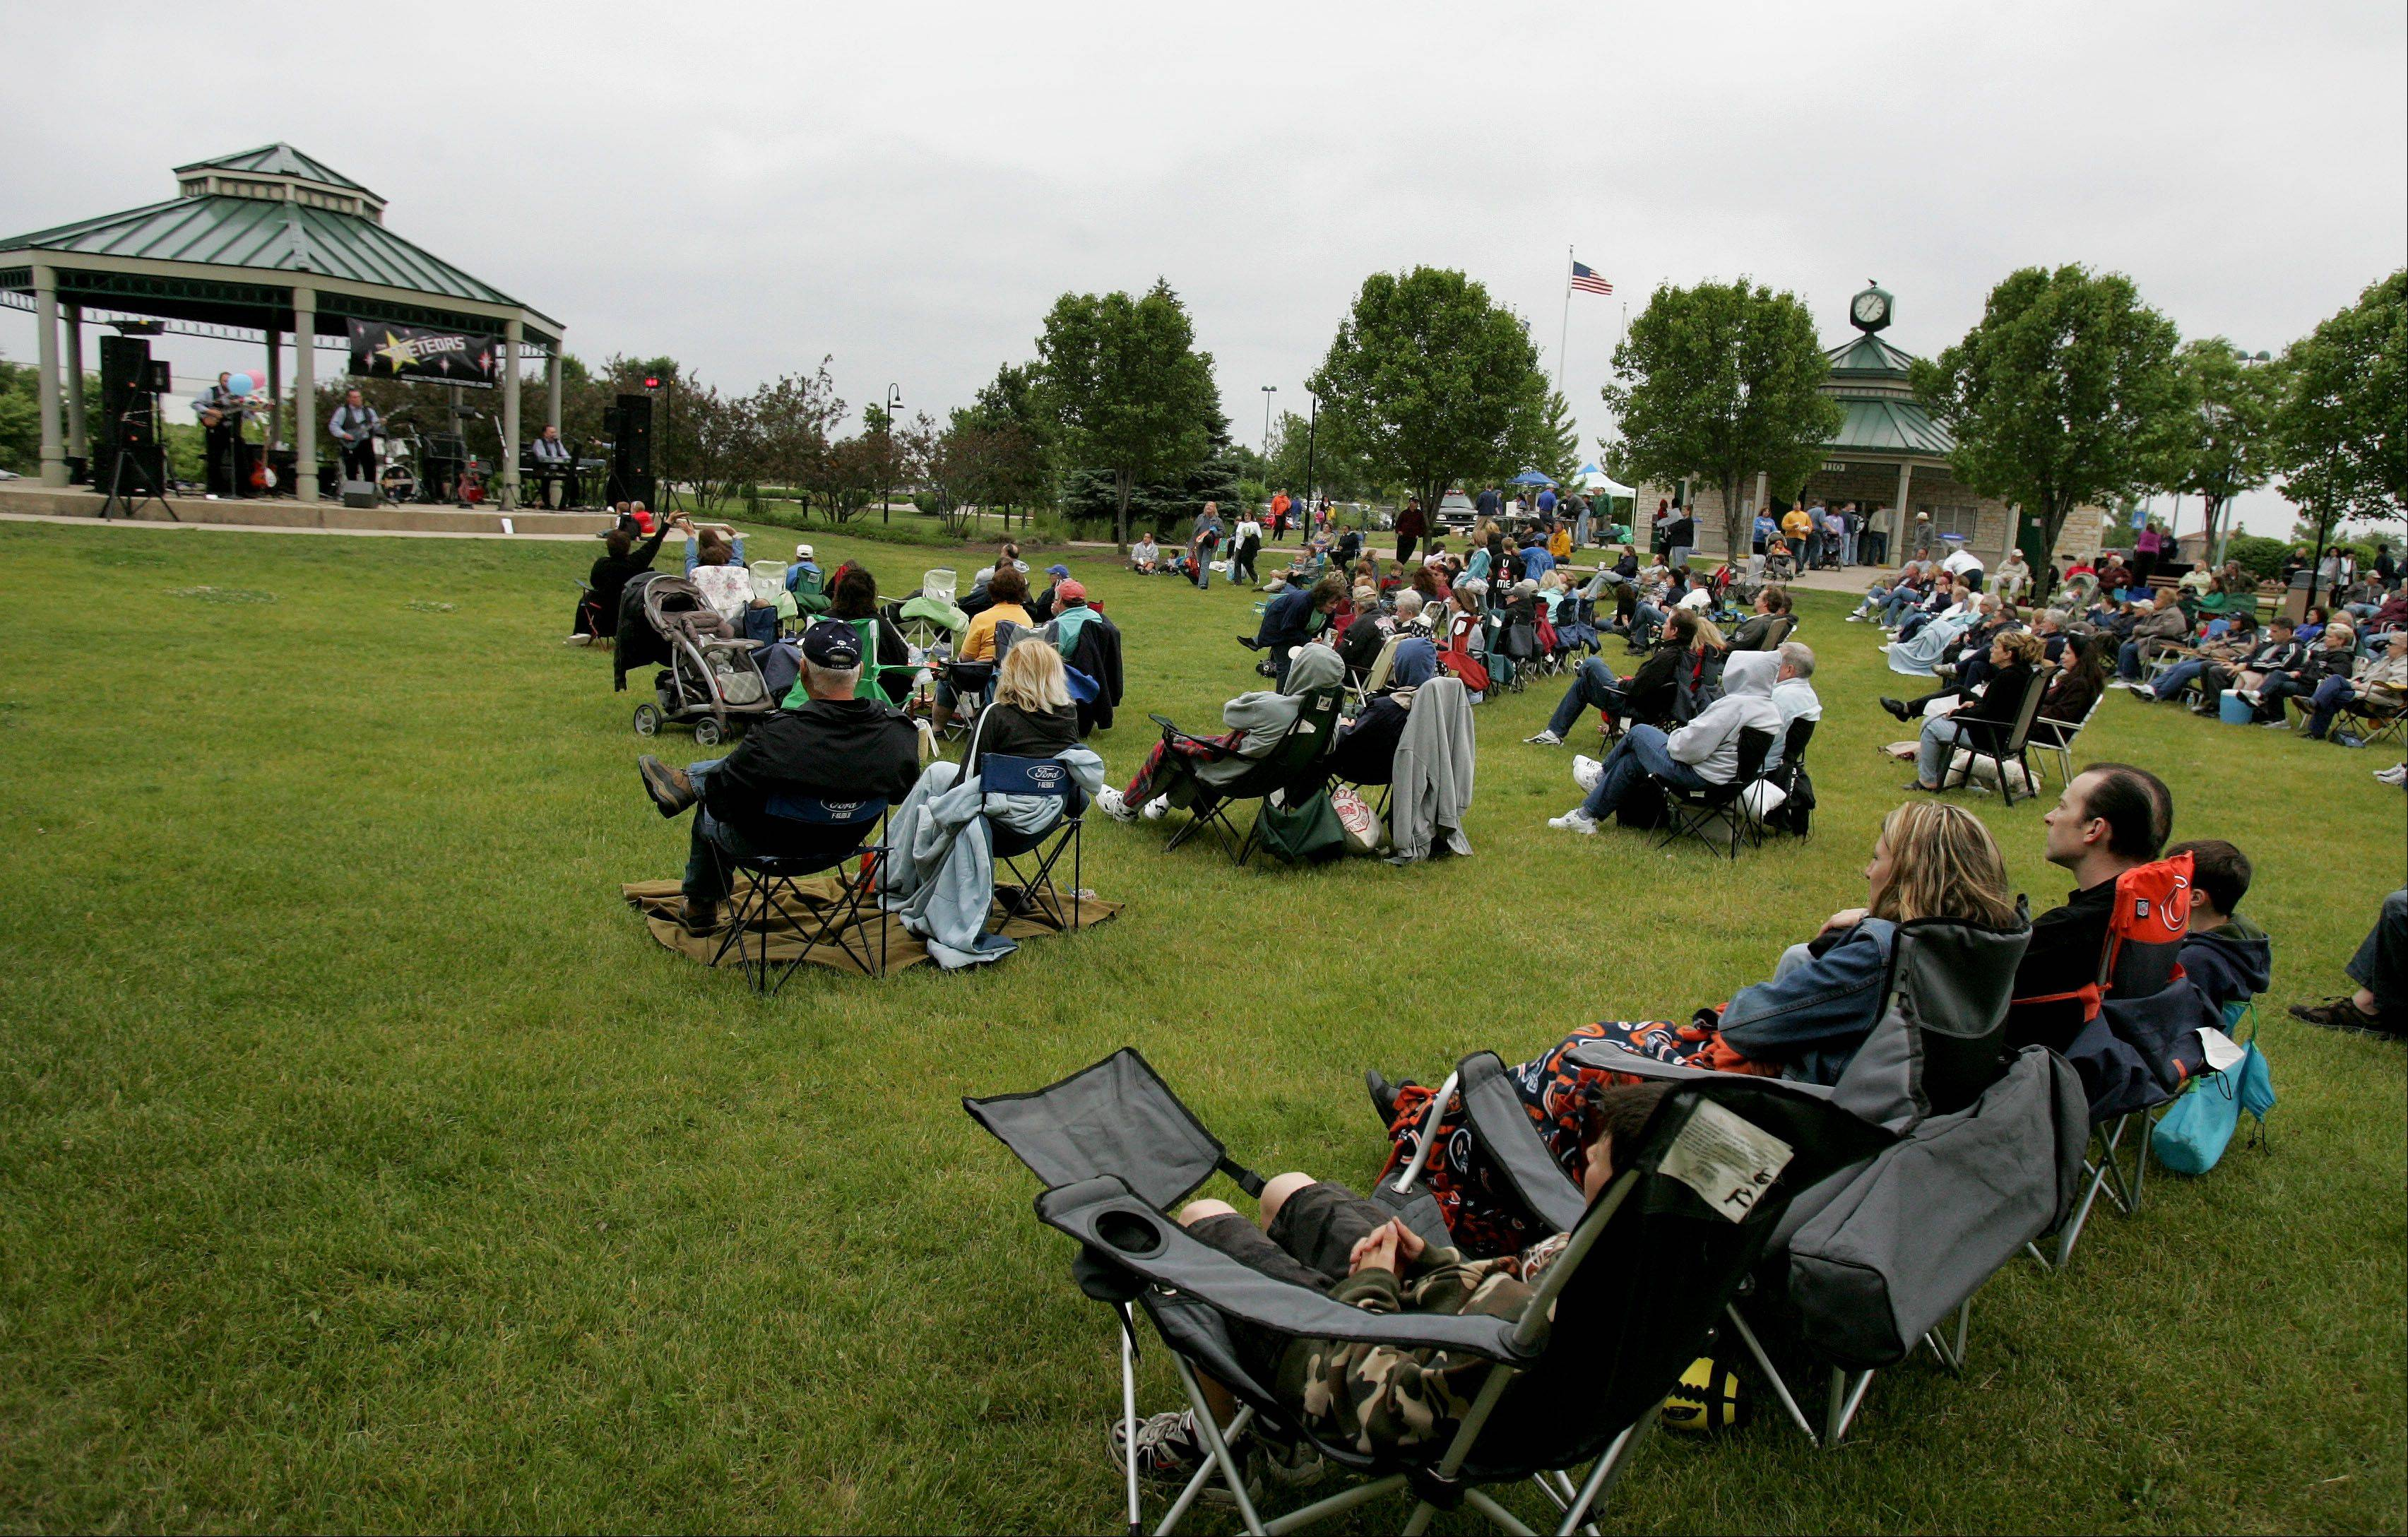 The 16th annual Summer Concert Series in Carol Stream kicks off Thursday at the Ross Ferraro Town Center.